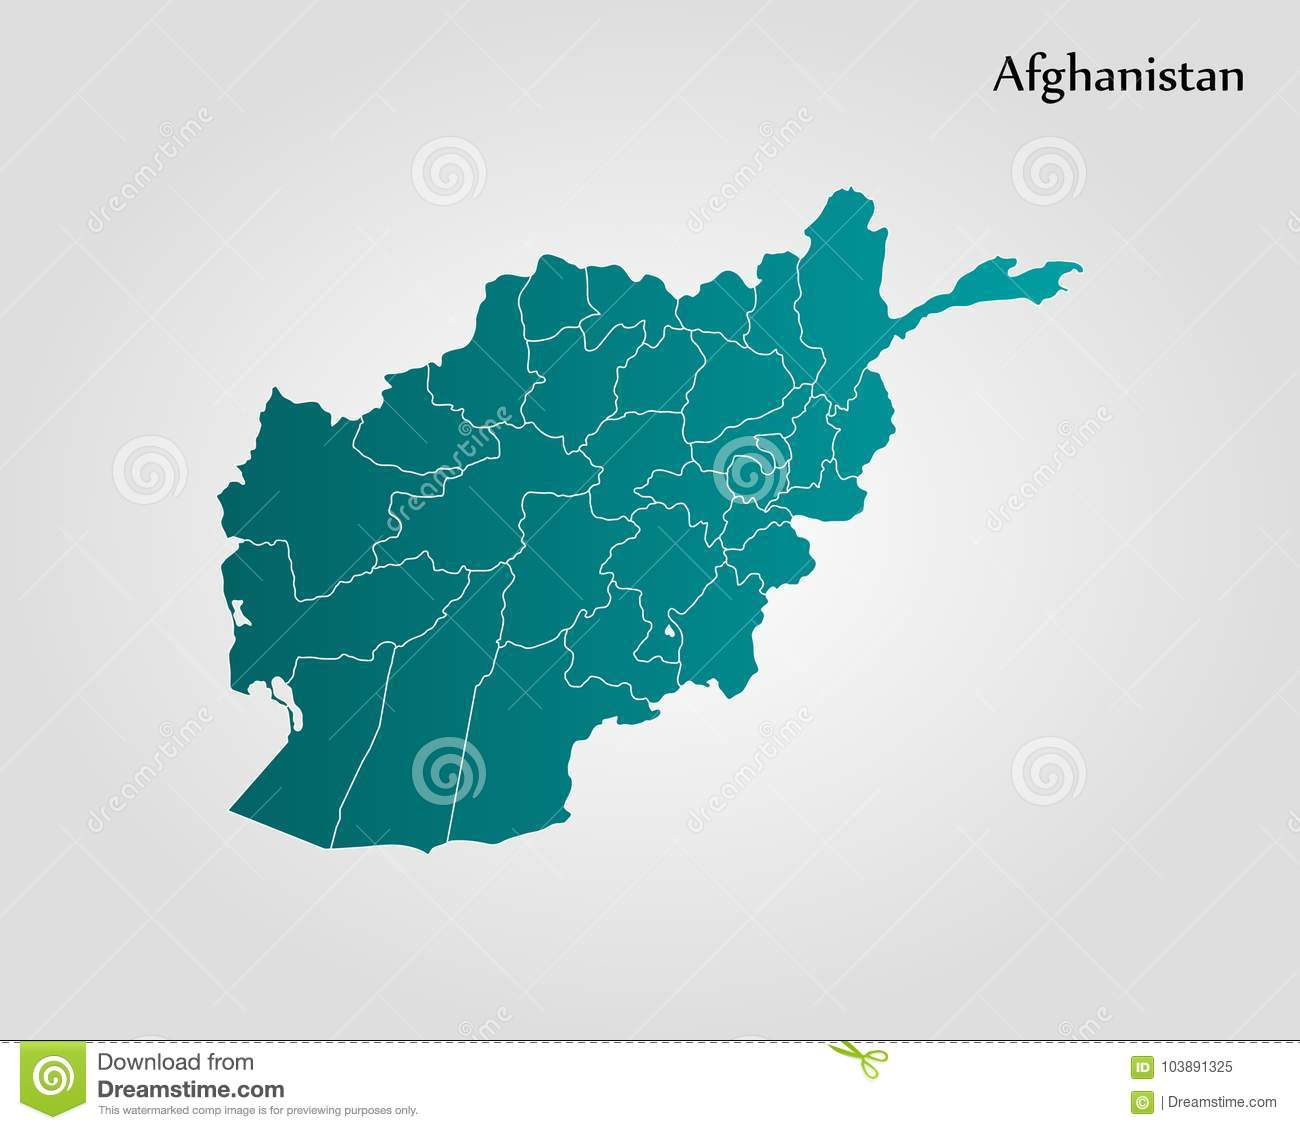 Map of afghanistan stock illustration illustration of herat 103891325 download comp gumiabroncs Choice Image